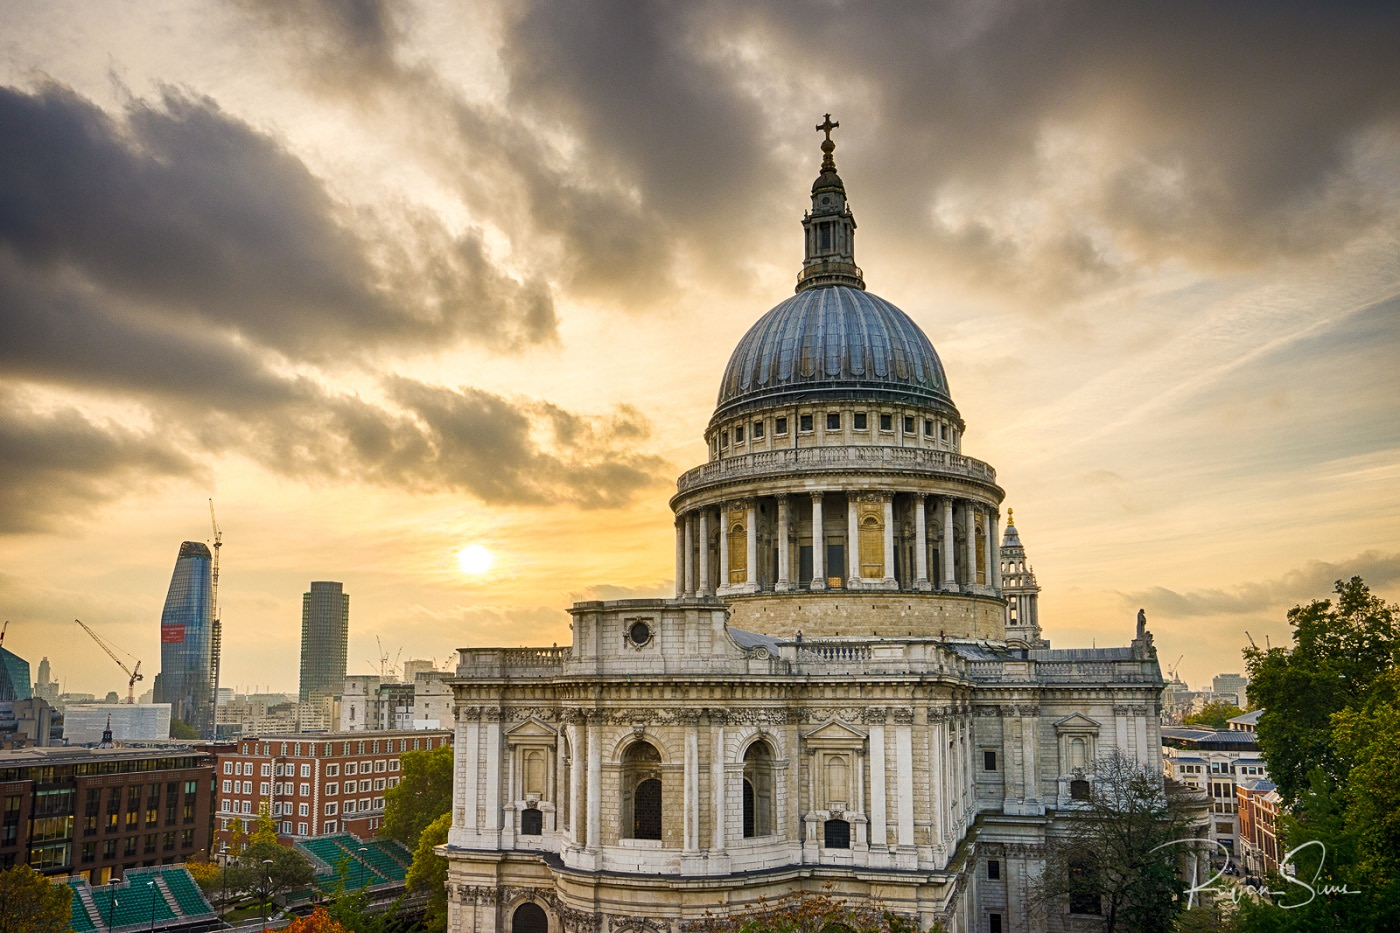 St. Paul's Cathedral (1675-1711) | Source: rowansims.com